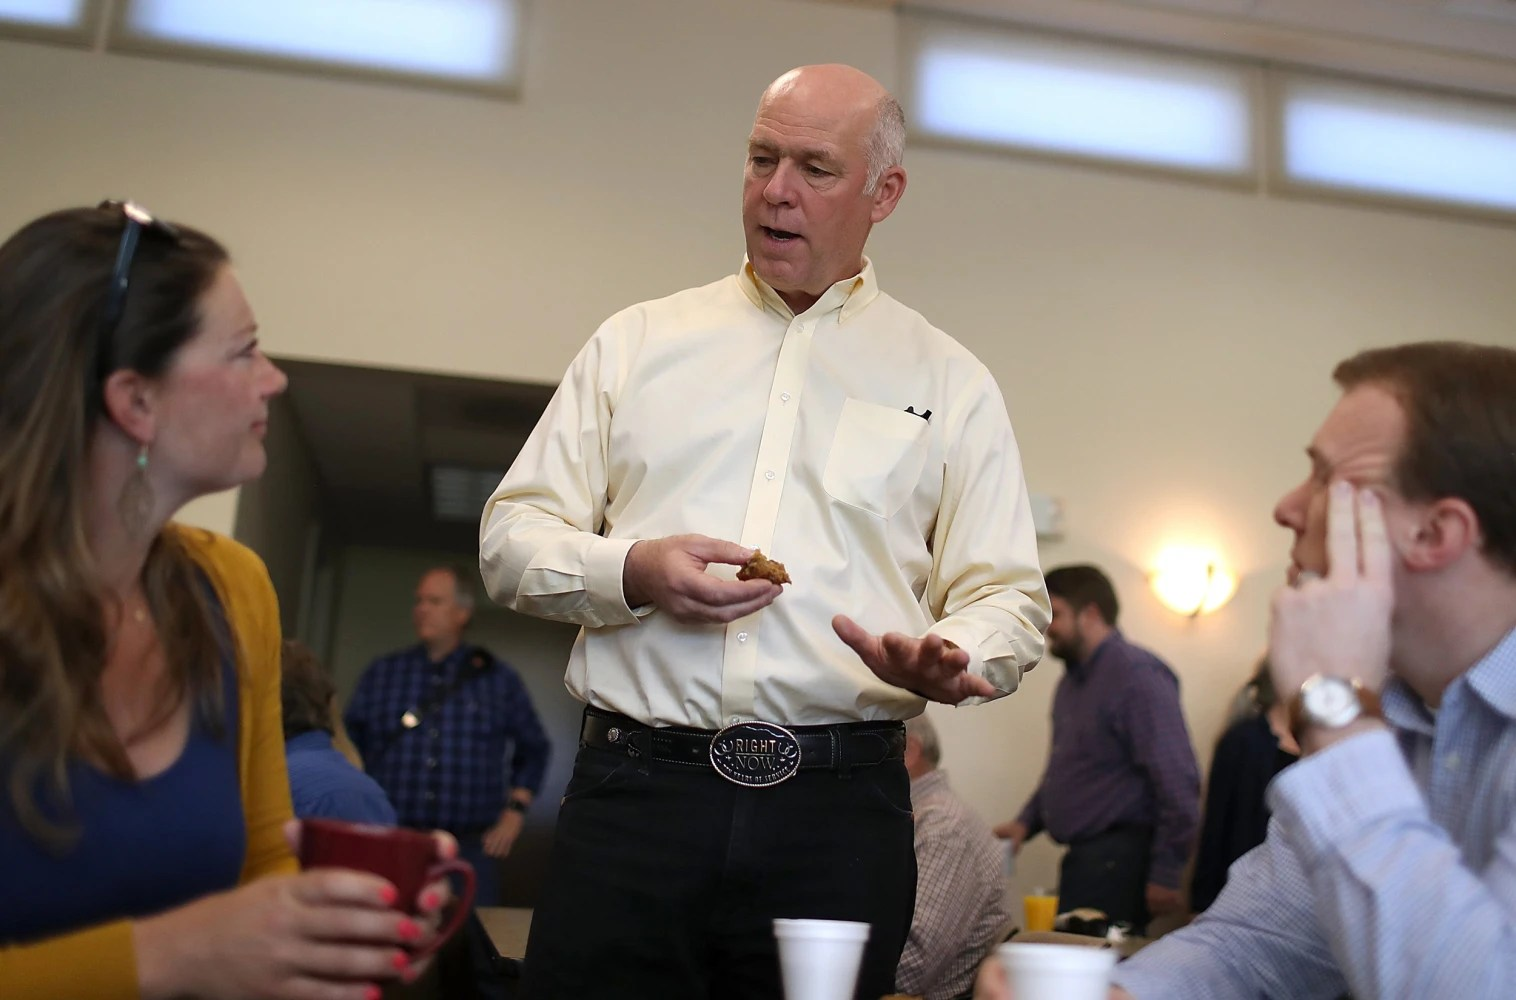 Health care is key issue as Montana fills US House seat